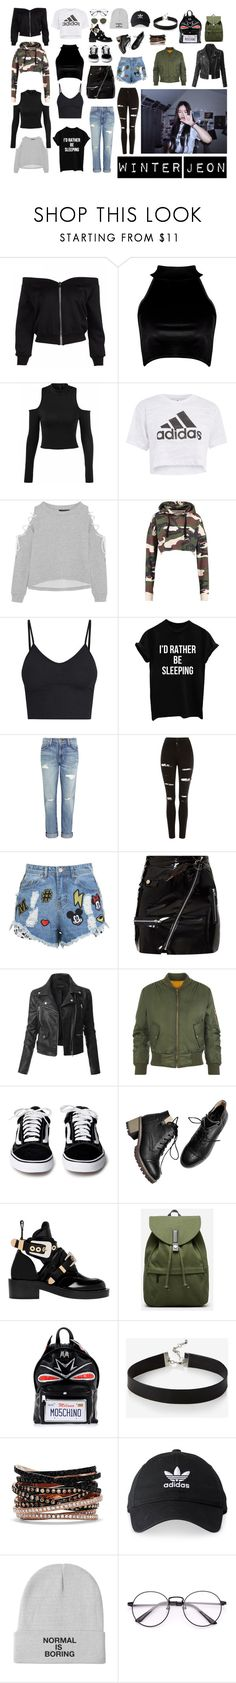 """""""Winter Jeon's Closet"""" by marylavey ❤ liked on Polyvore featuring Boohoo, Topshop, W118 by Walter Baker, BasicGrey, Current/Elliott, Disney Stars Studios, LE3NO, WearAll, Balenciaga and Everlane"""